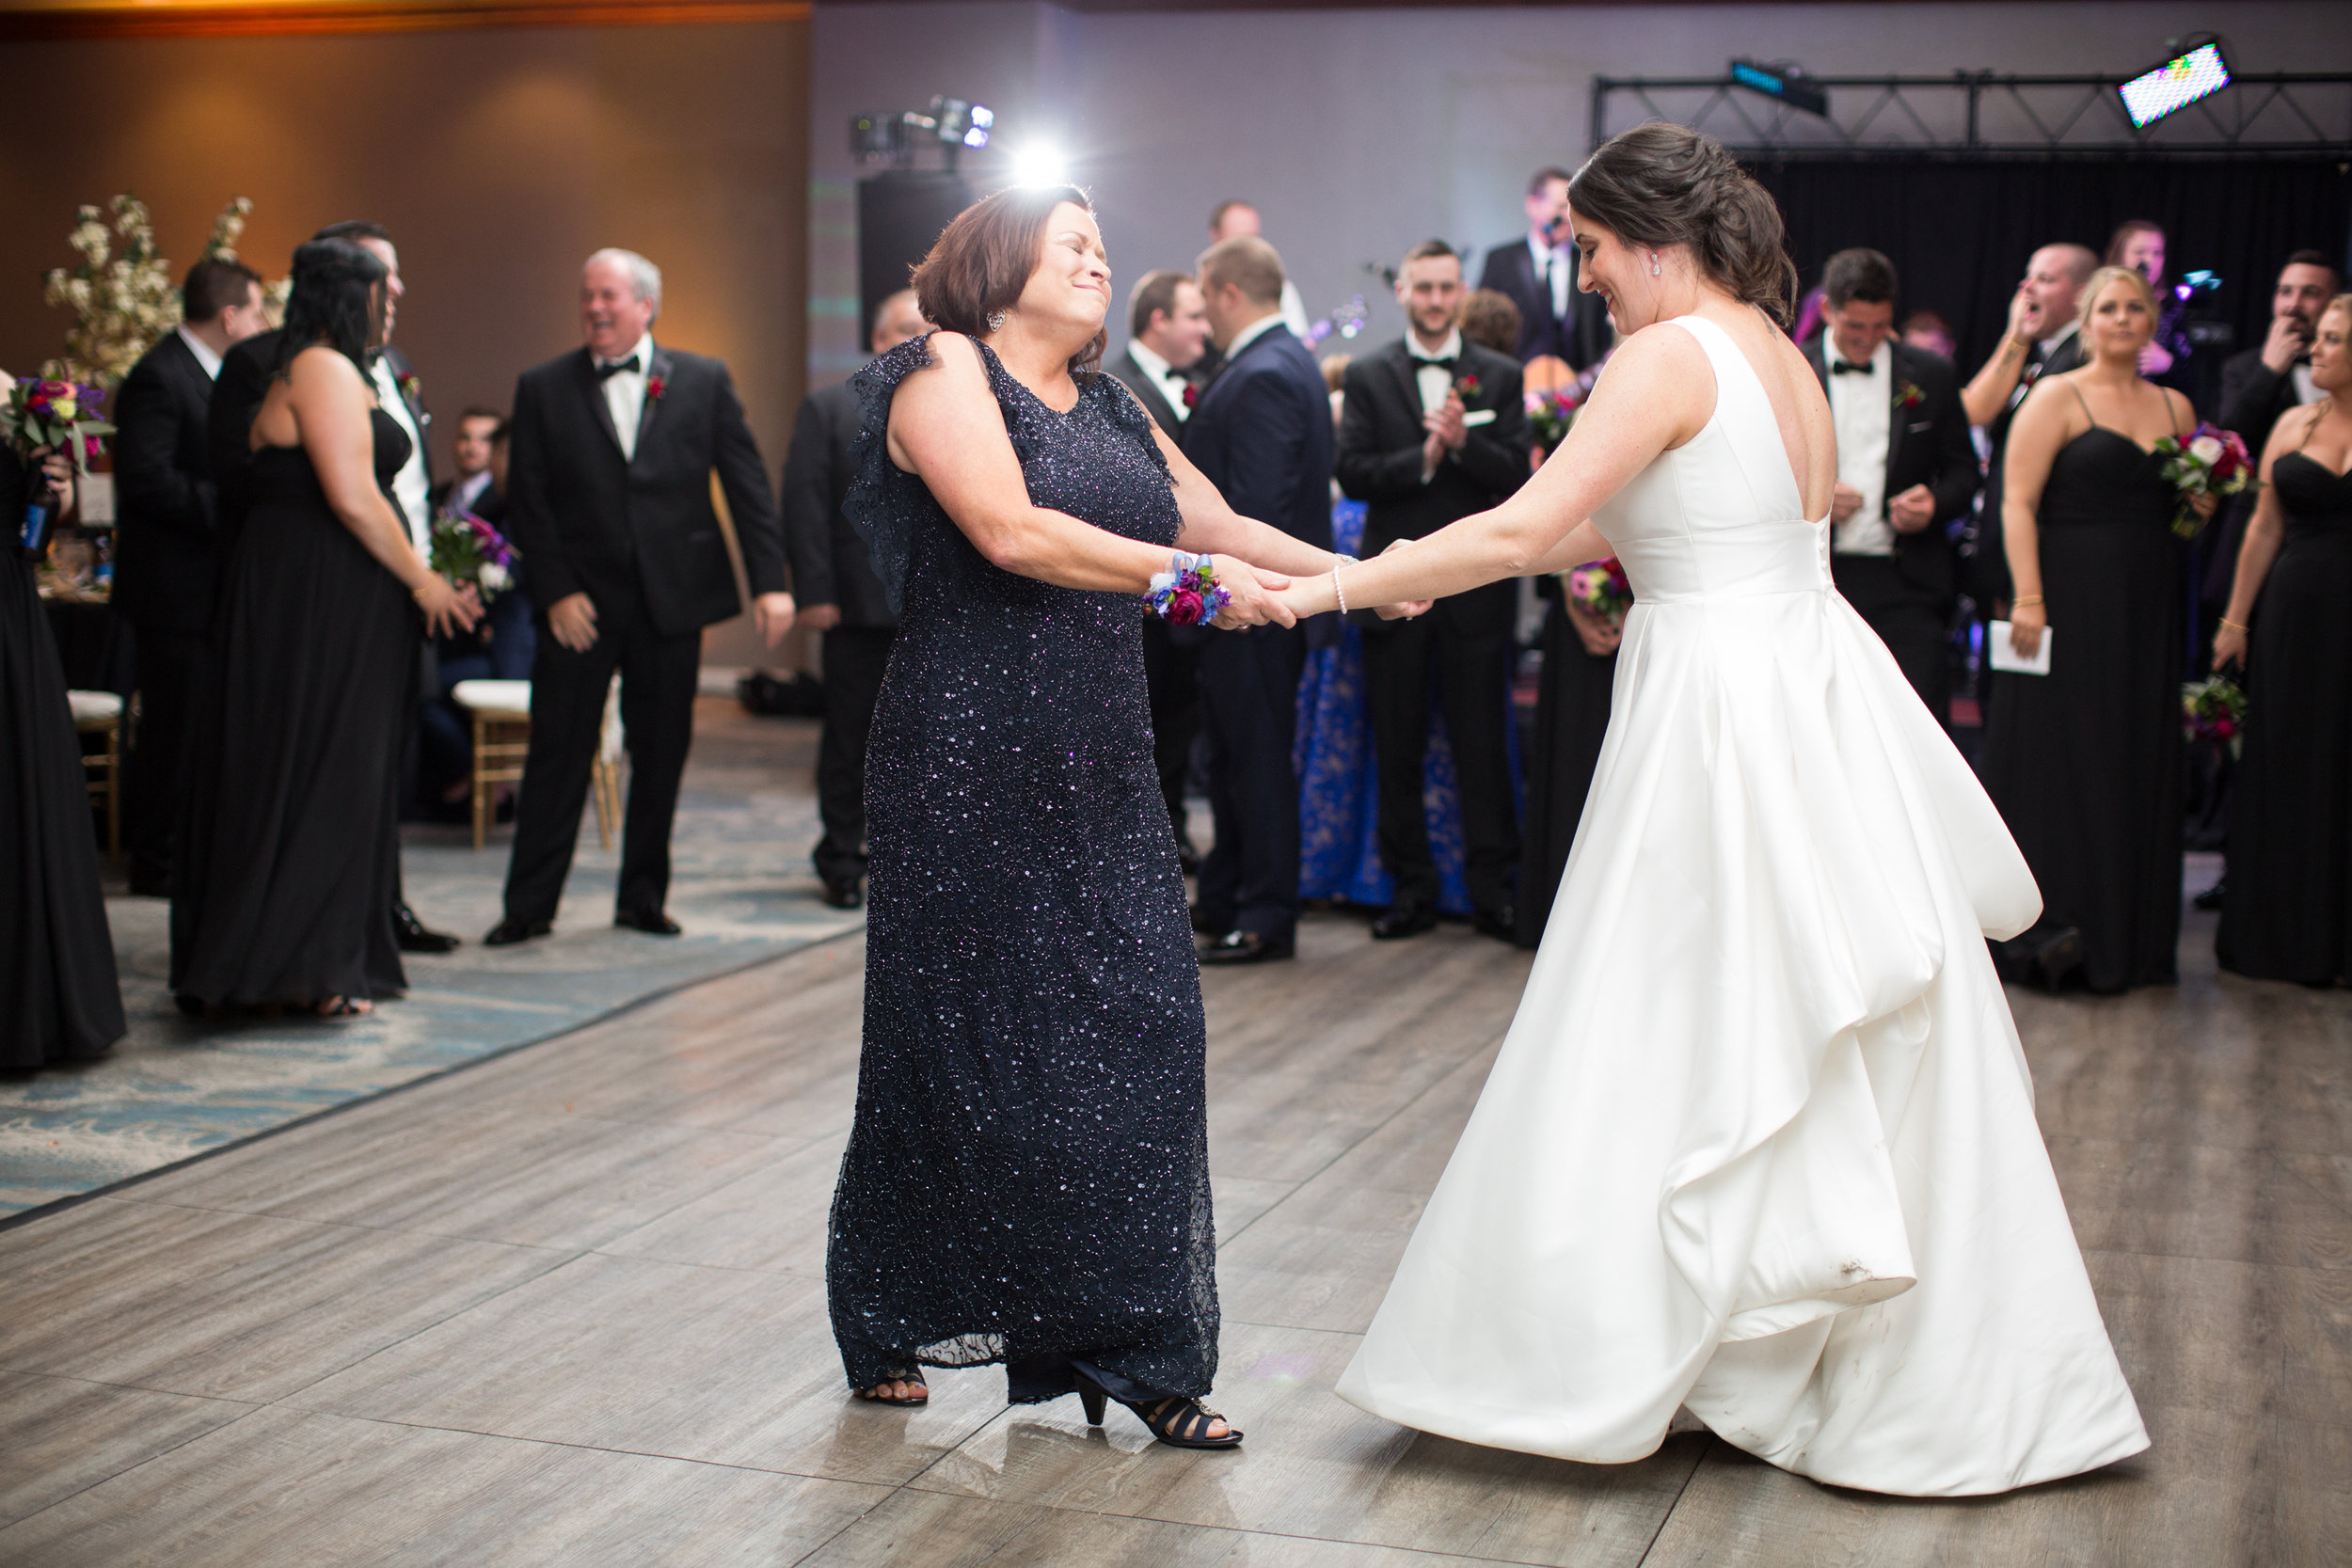 Hilton Scranton PA Wedding Photos_JDP-128.jpg